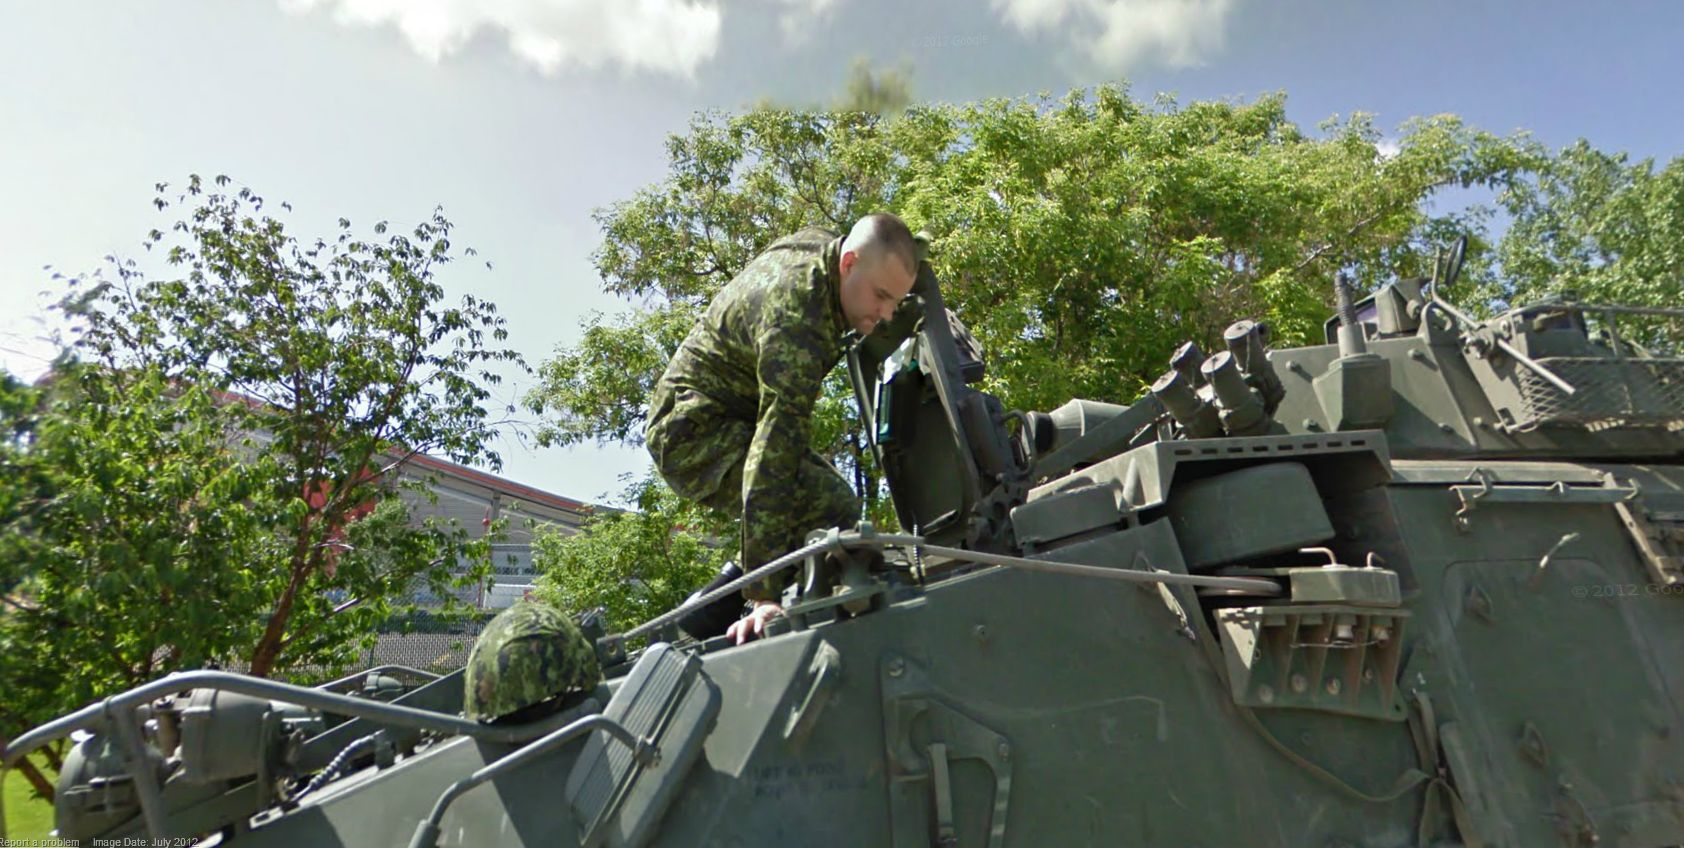 Canadian Soldiers on the War front?